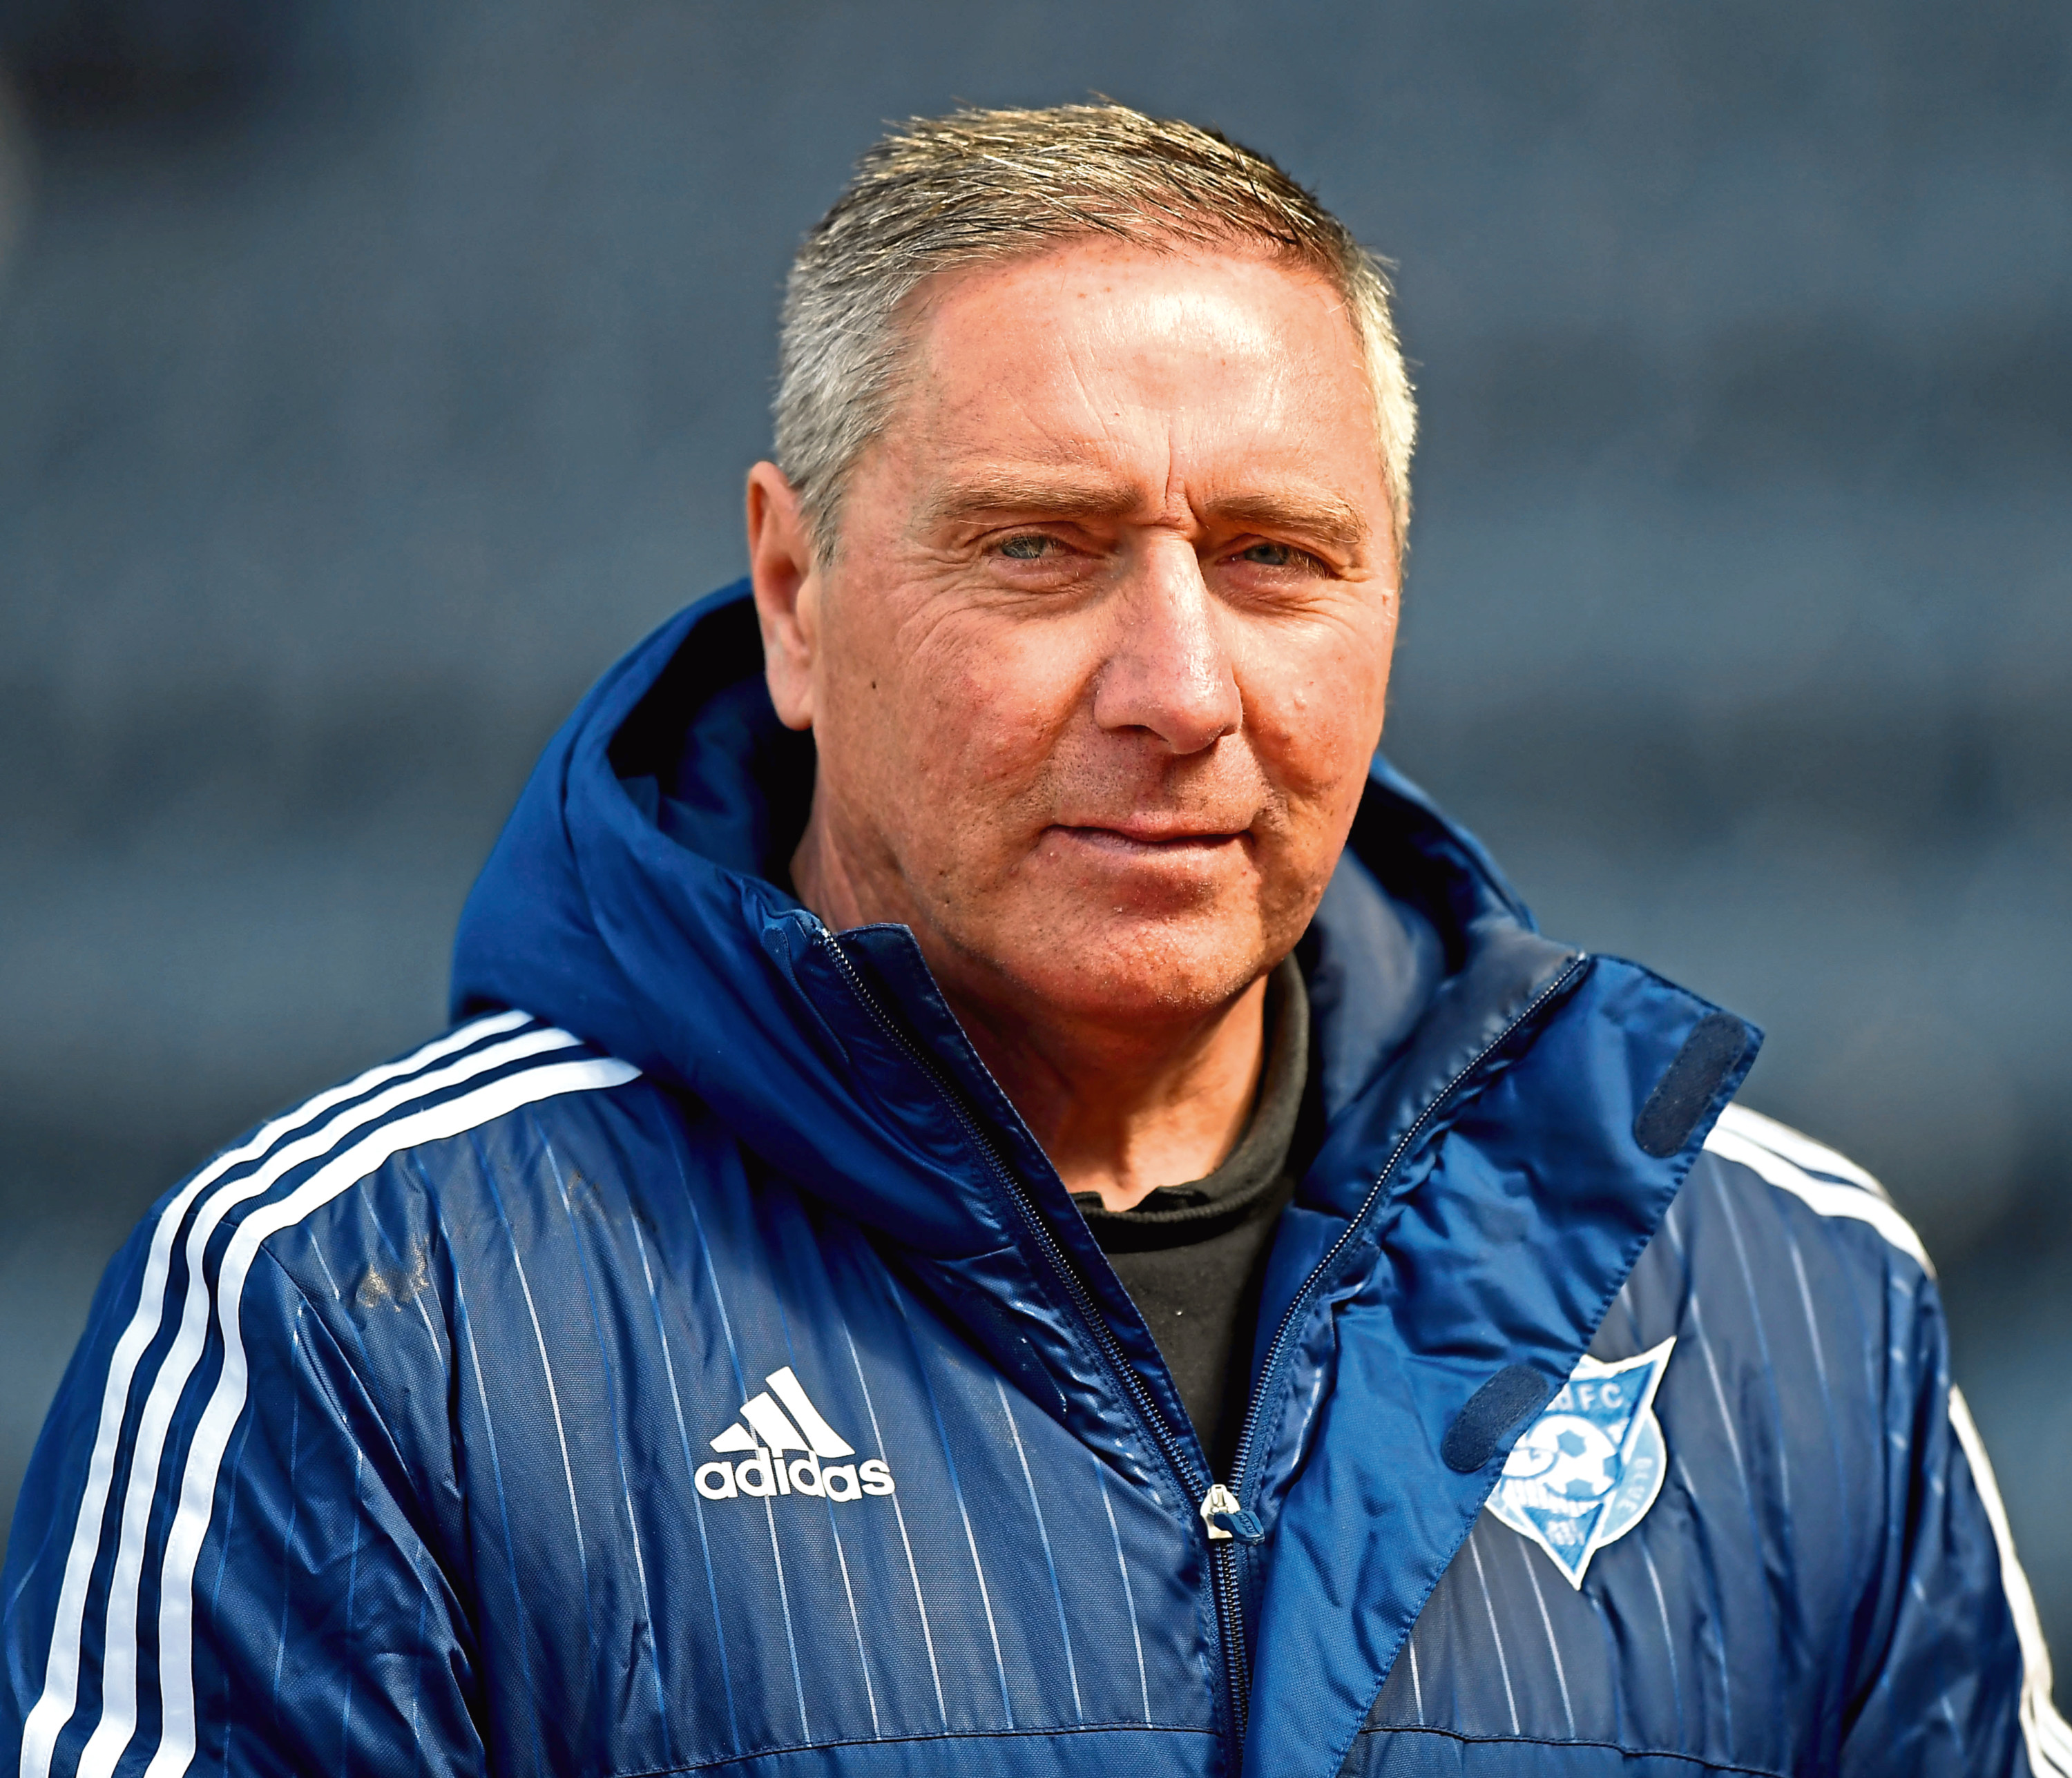 Peterhead manager Jim McInally is hoping to lead his side into the last 16 of the League Cup